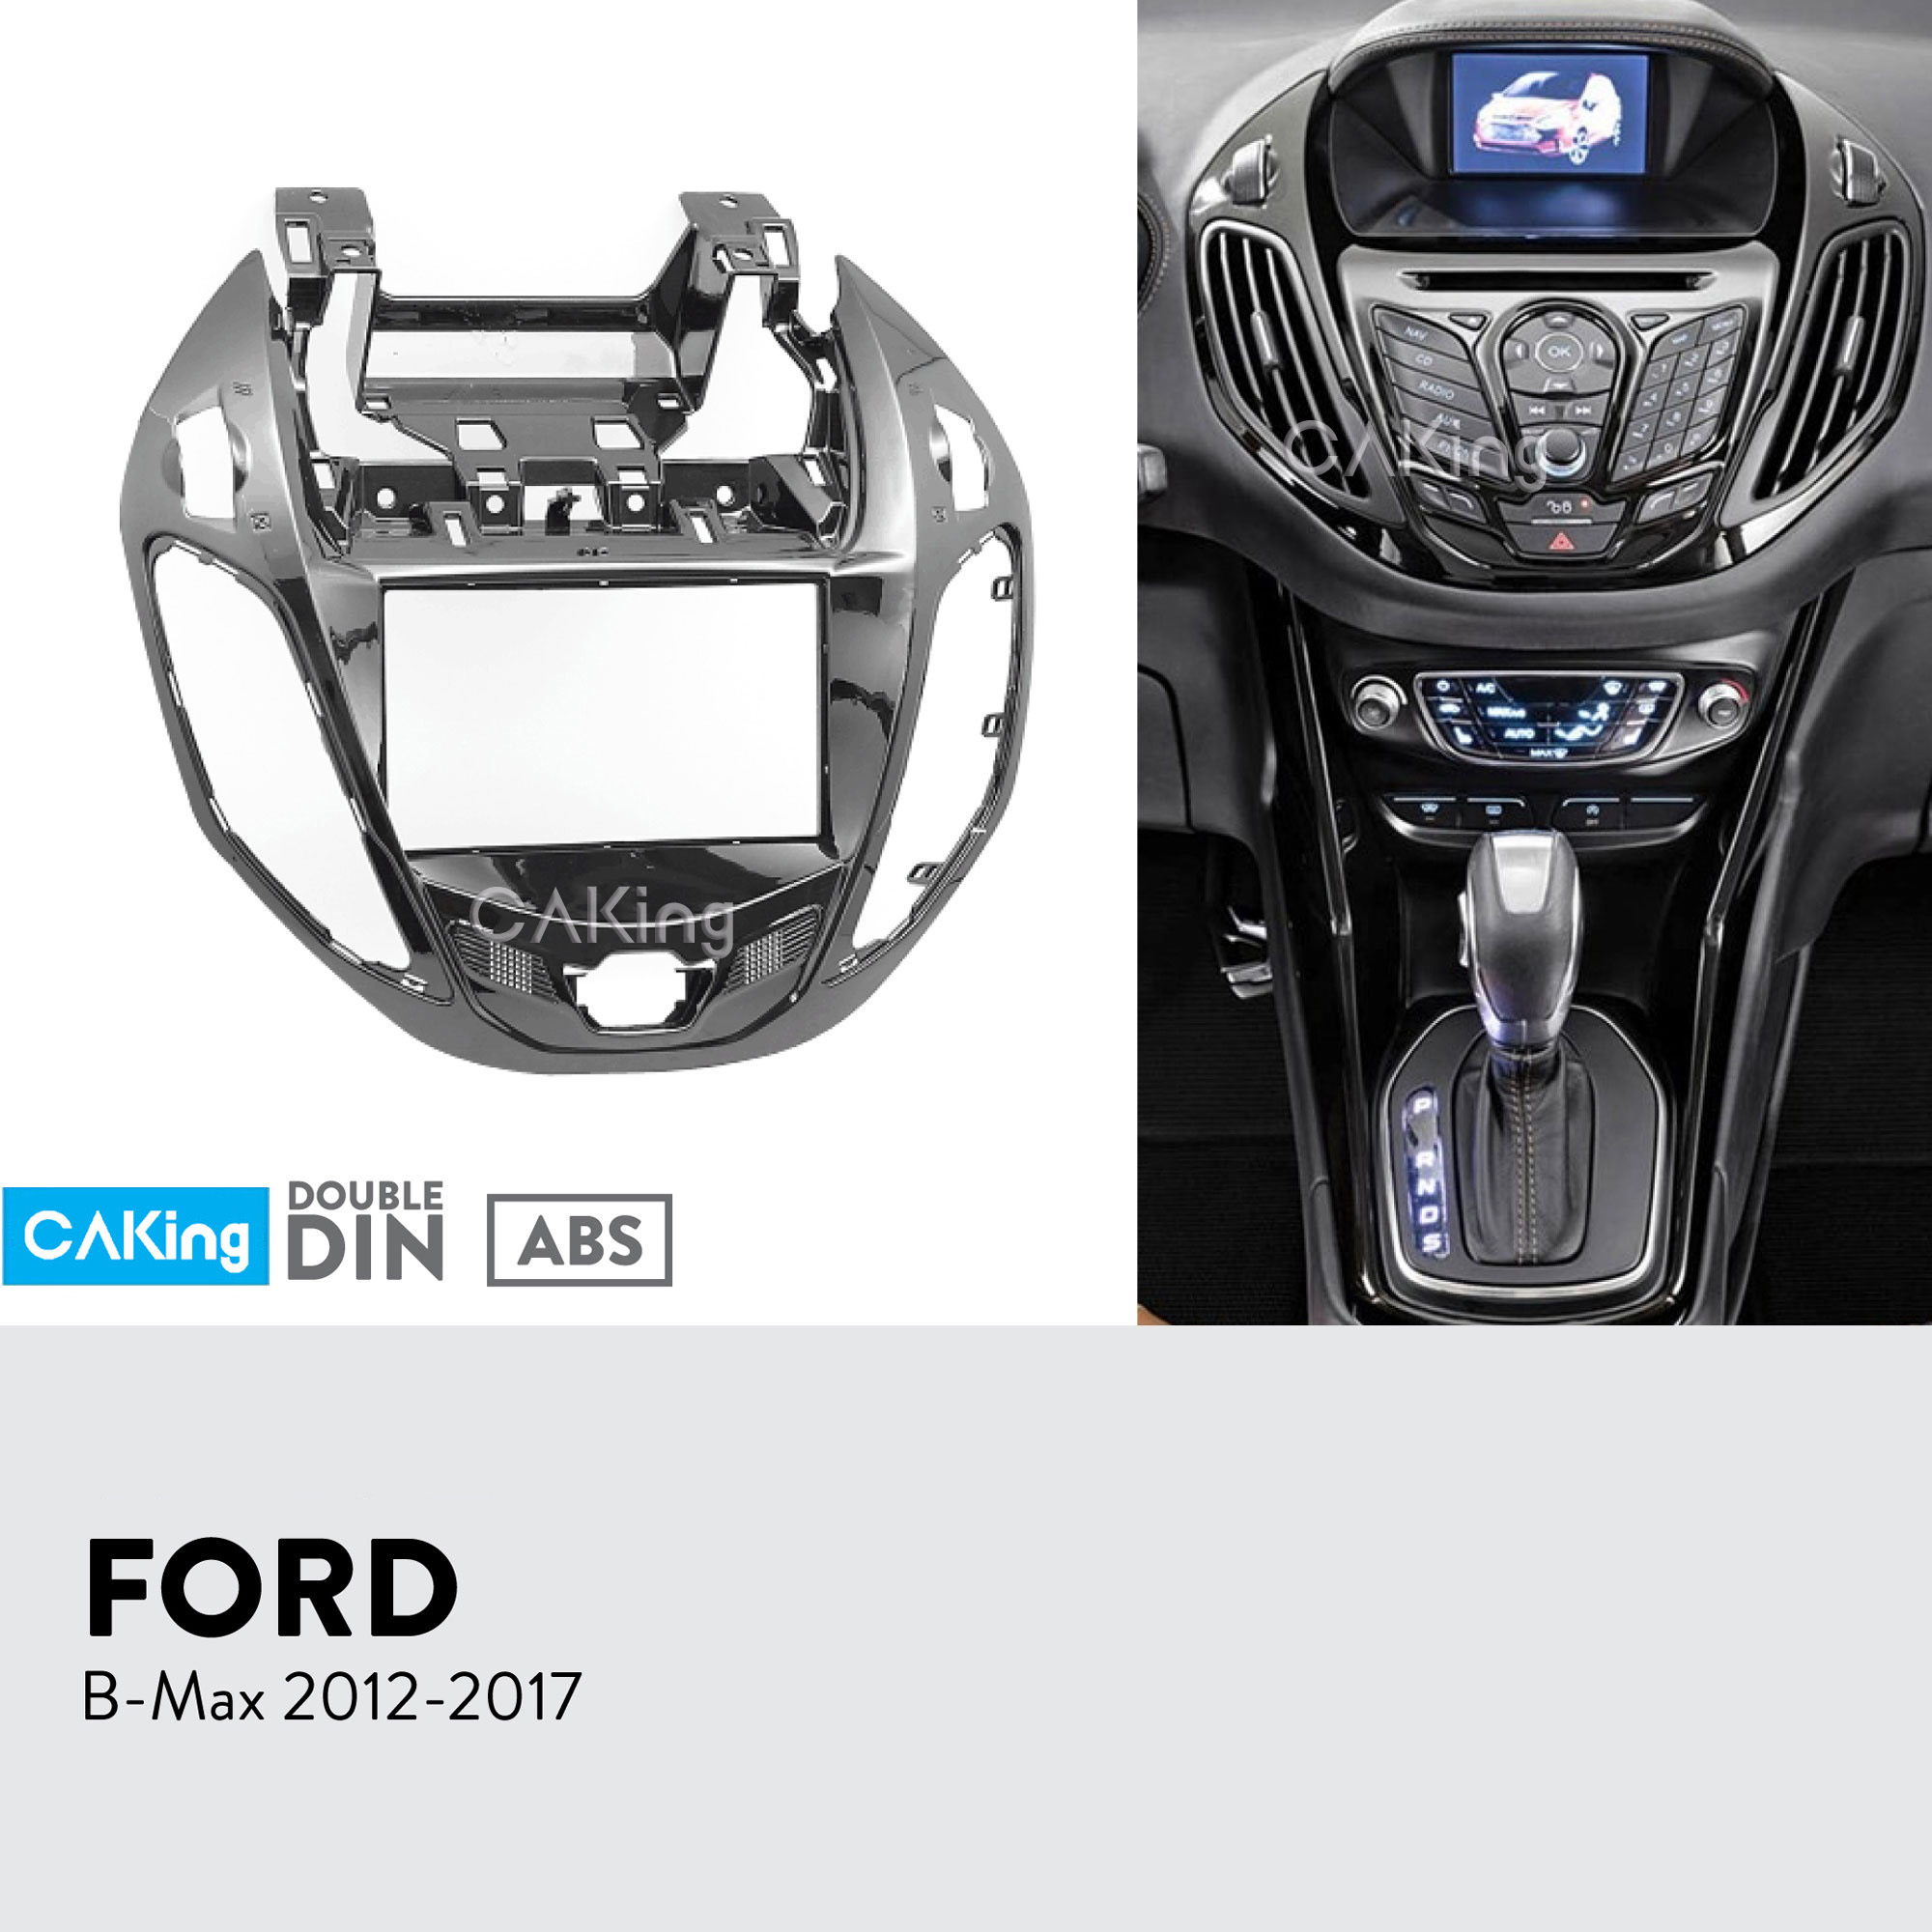 Double Din Car Fascia Radio Panel for FORD B Max Bmax 2012 2017 Dash Fitting Kit Facia Face Plate Adapter Cover Front Bezel-in Fascias from Automobiles & Motorcycles    1